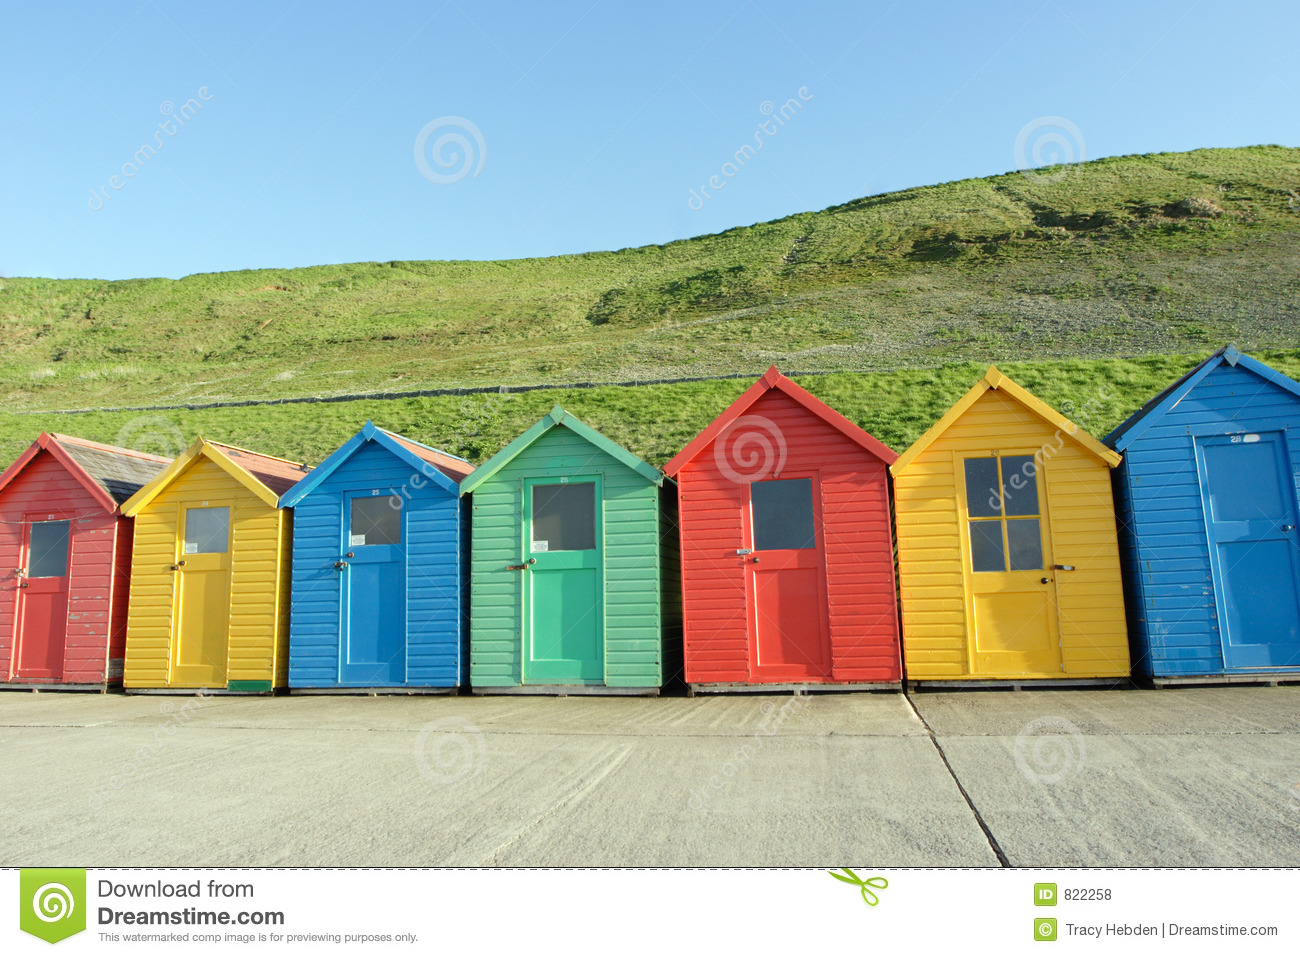 What Are The Prices Of Beach Huts